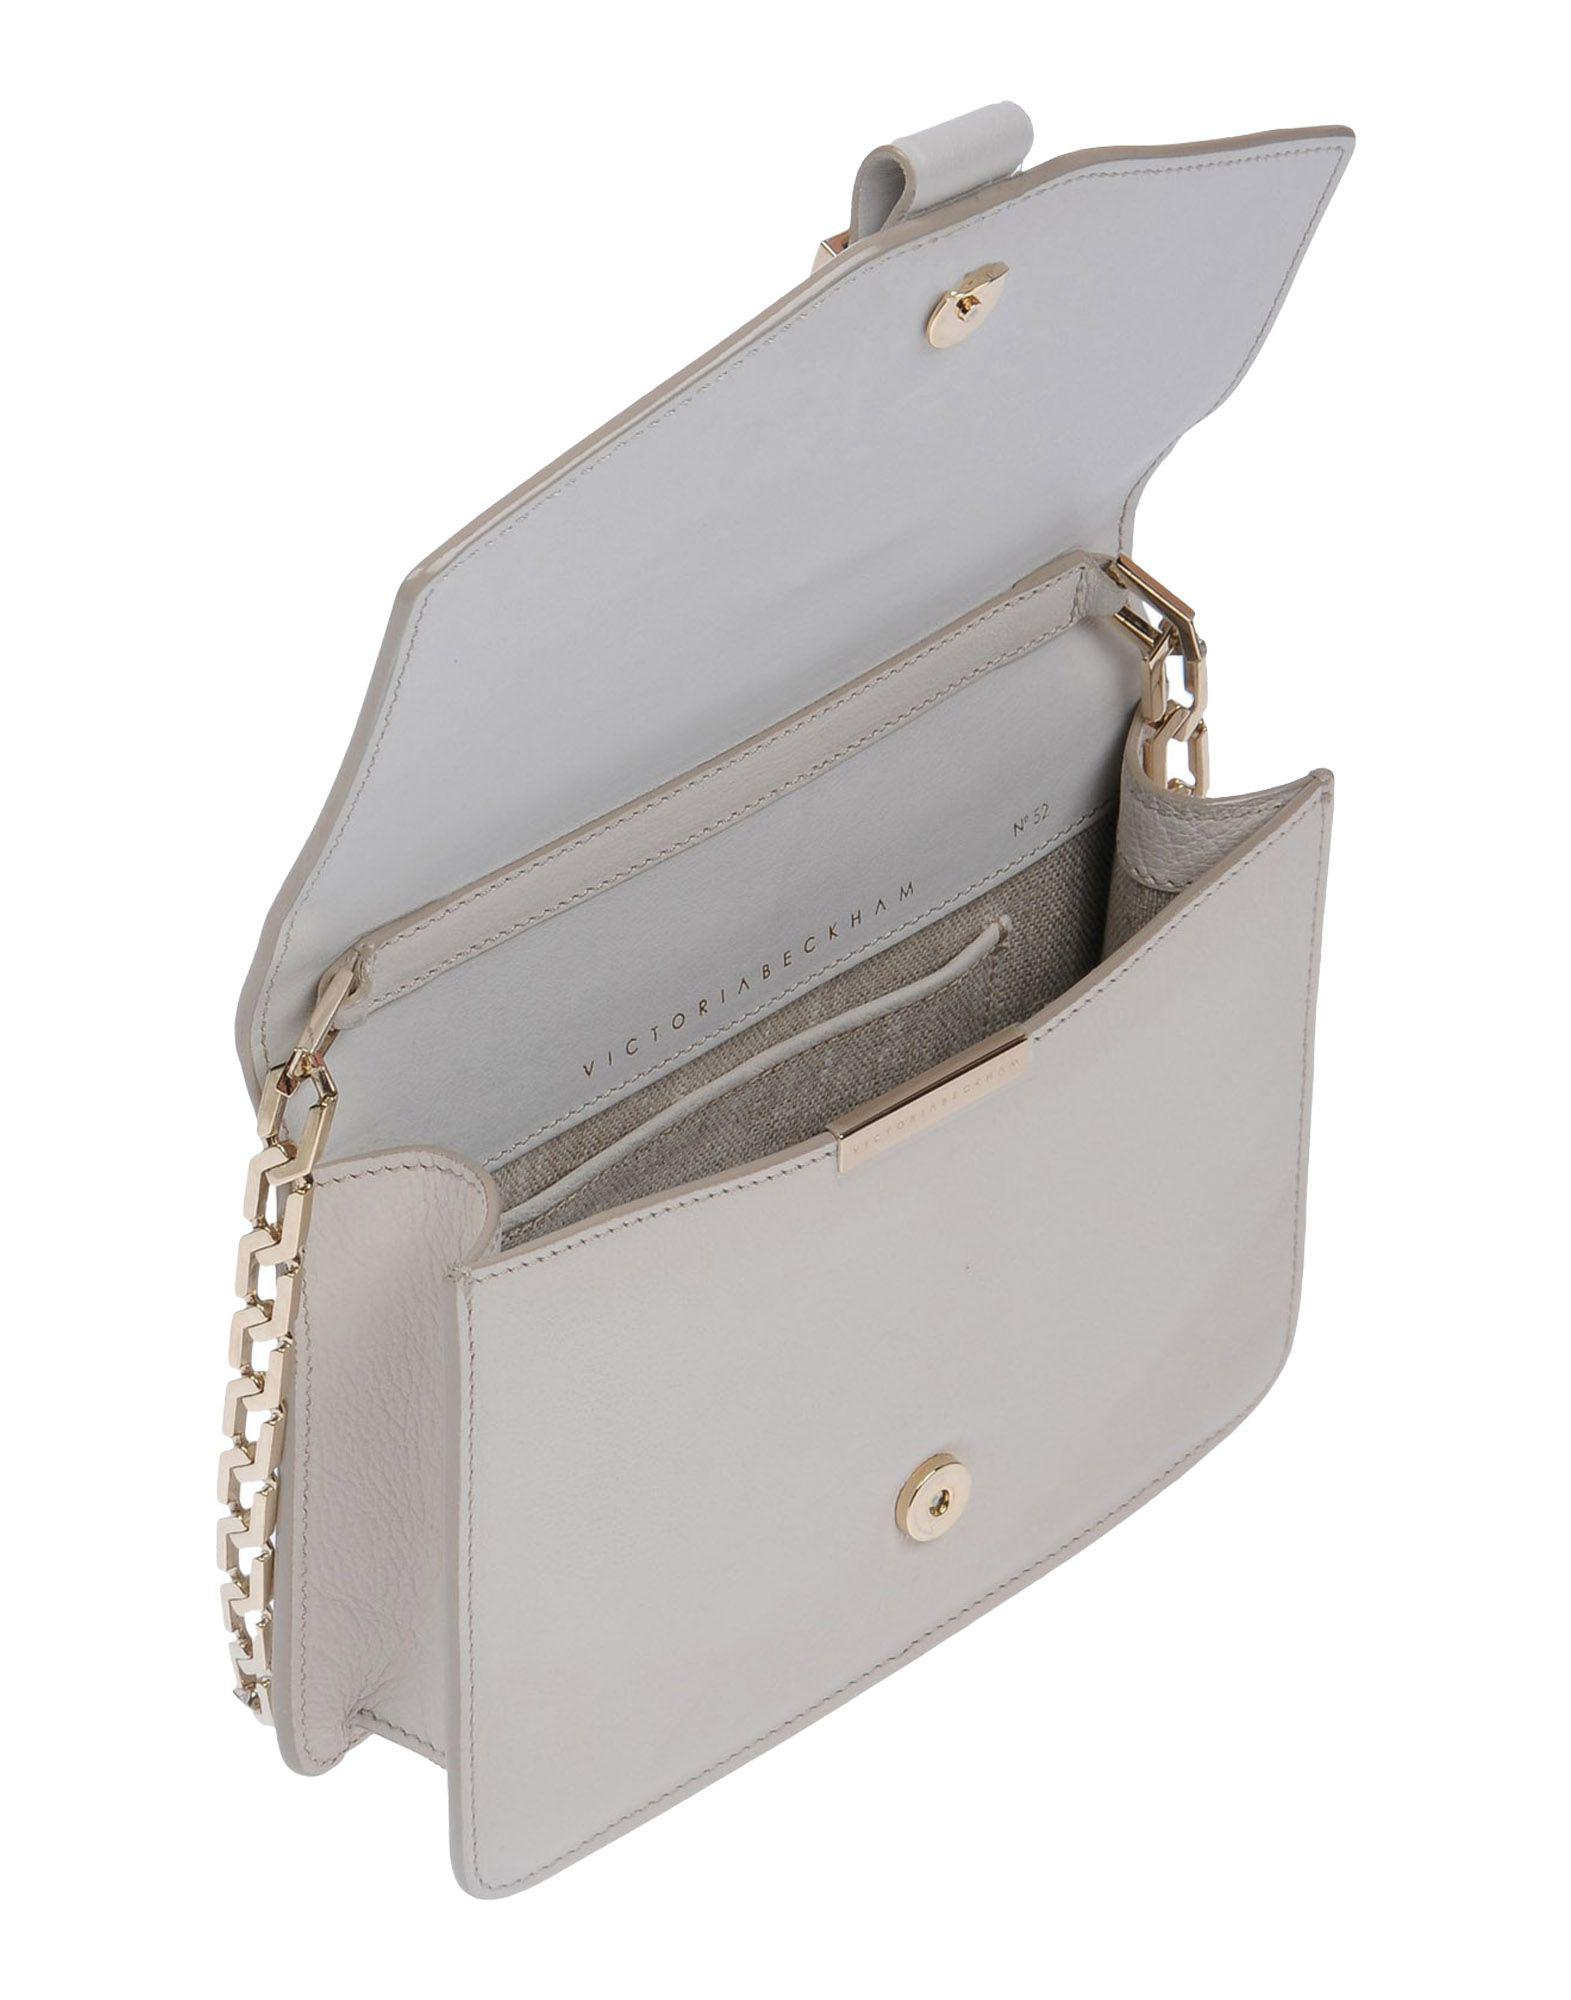 Victoria Beckham Leather Cross-body Bag in Ivory (White)